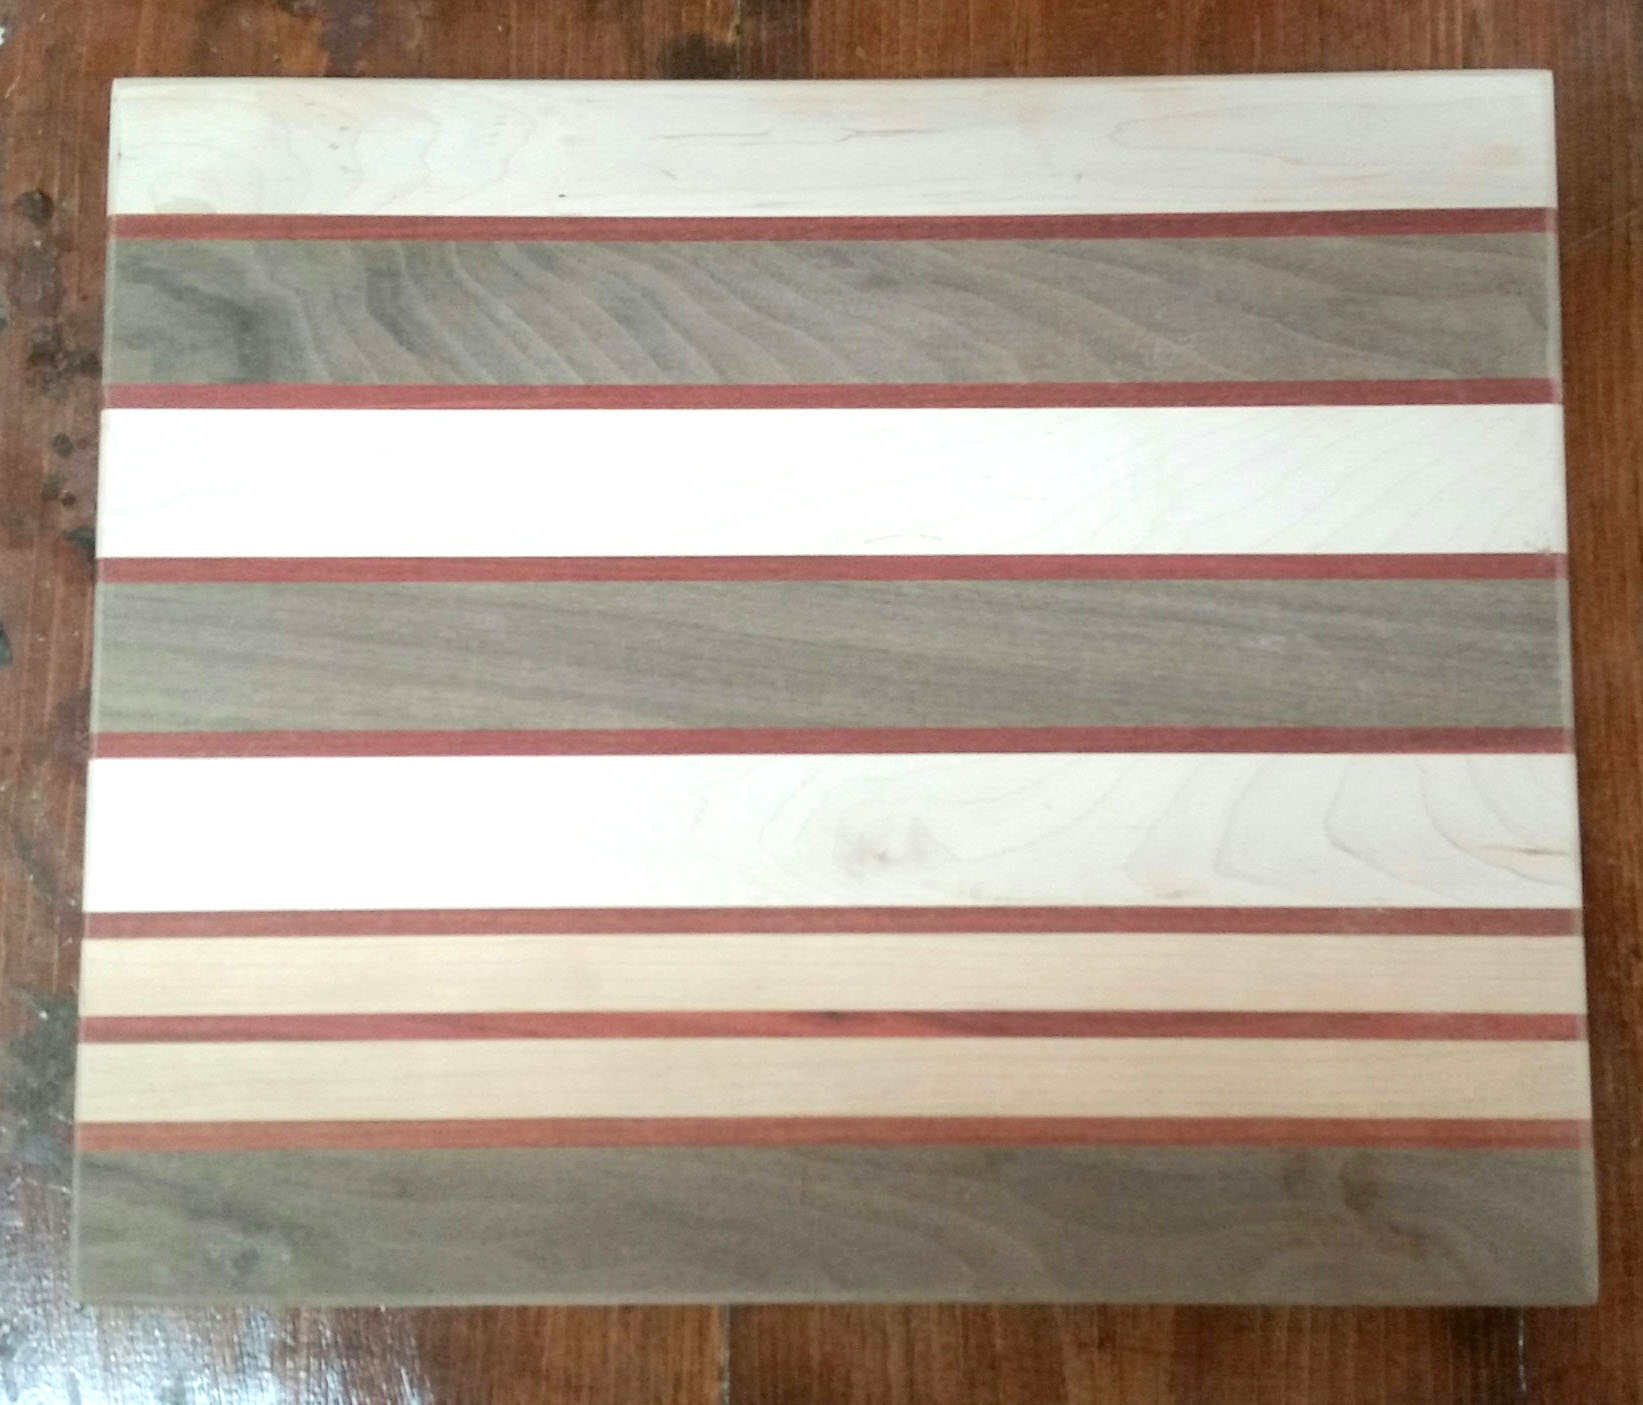 The-Olde-Firemans-Woodworking-Cutting-Boards-bloodcut.jpg